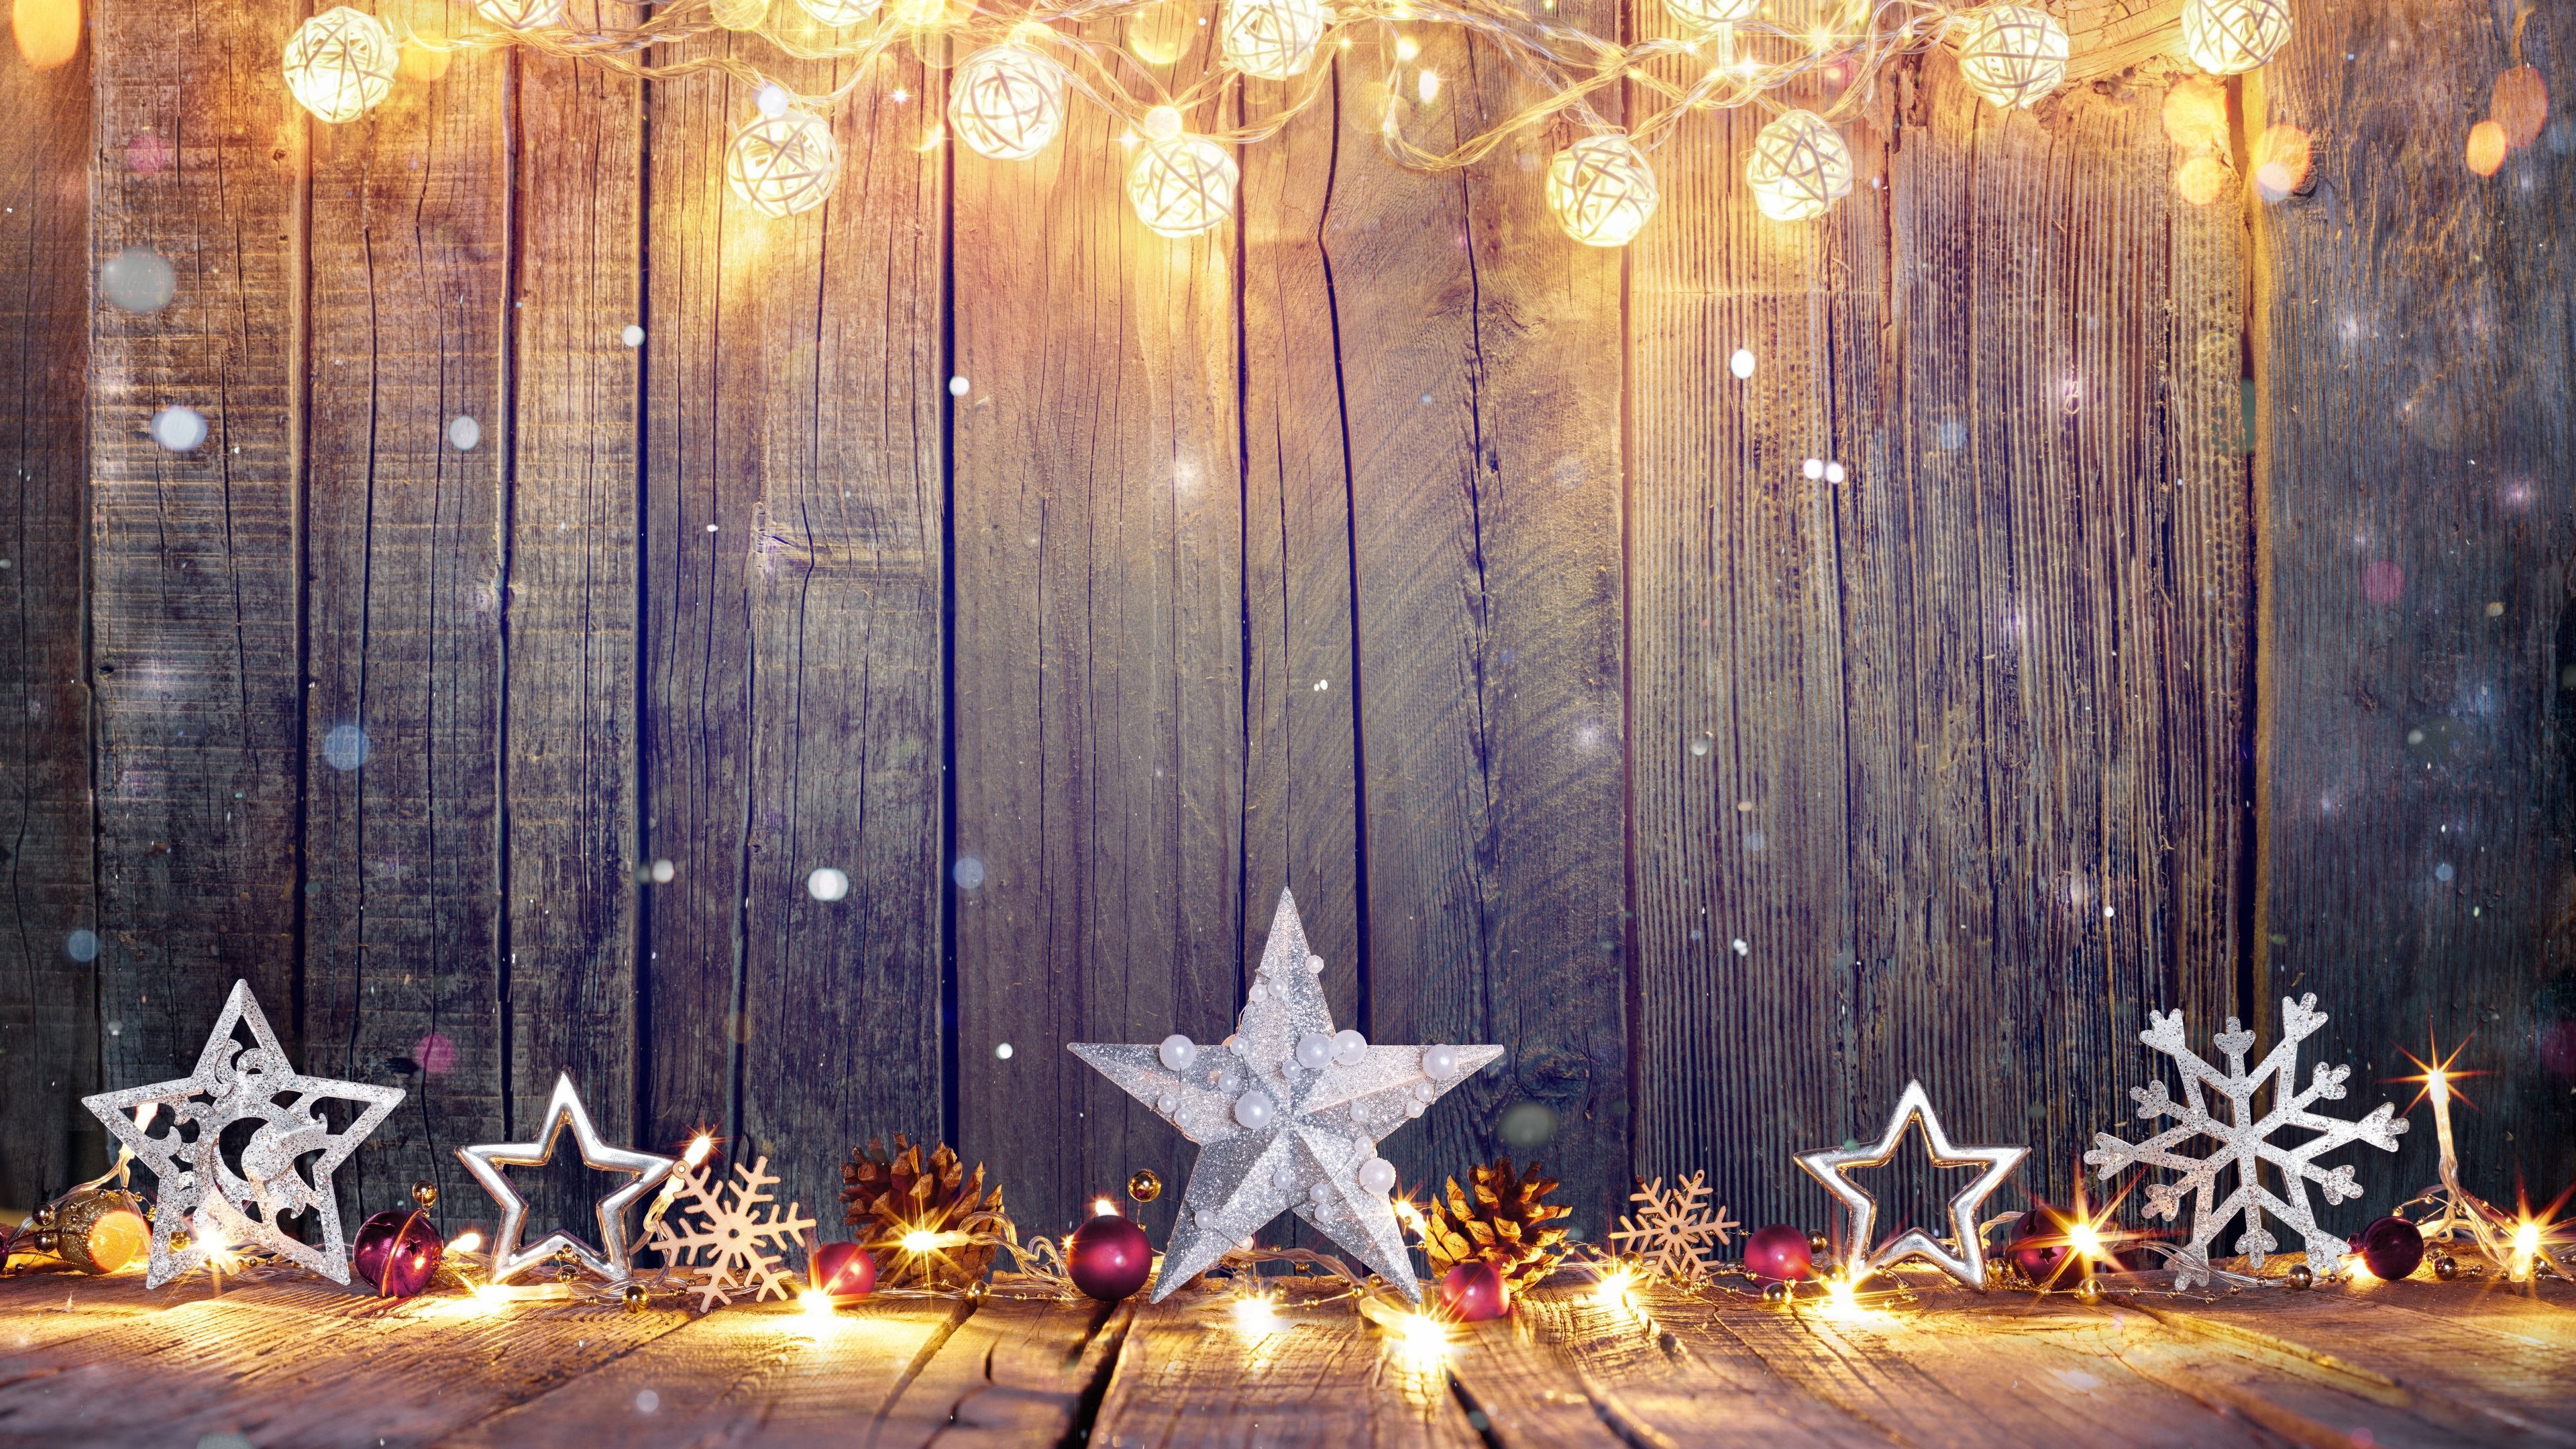 4k Christmas star holidays wallpapers, hdwallpapers